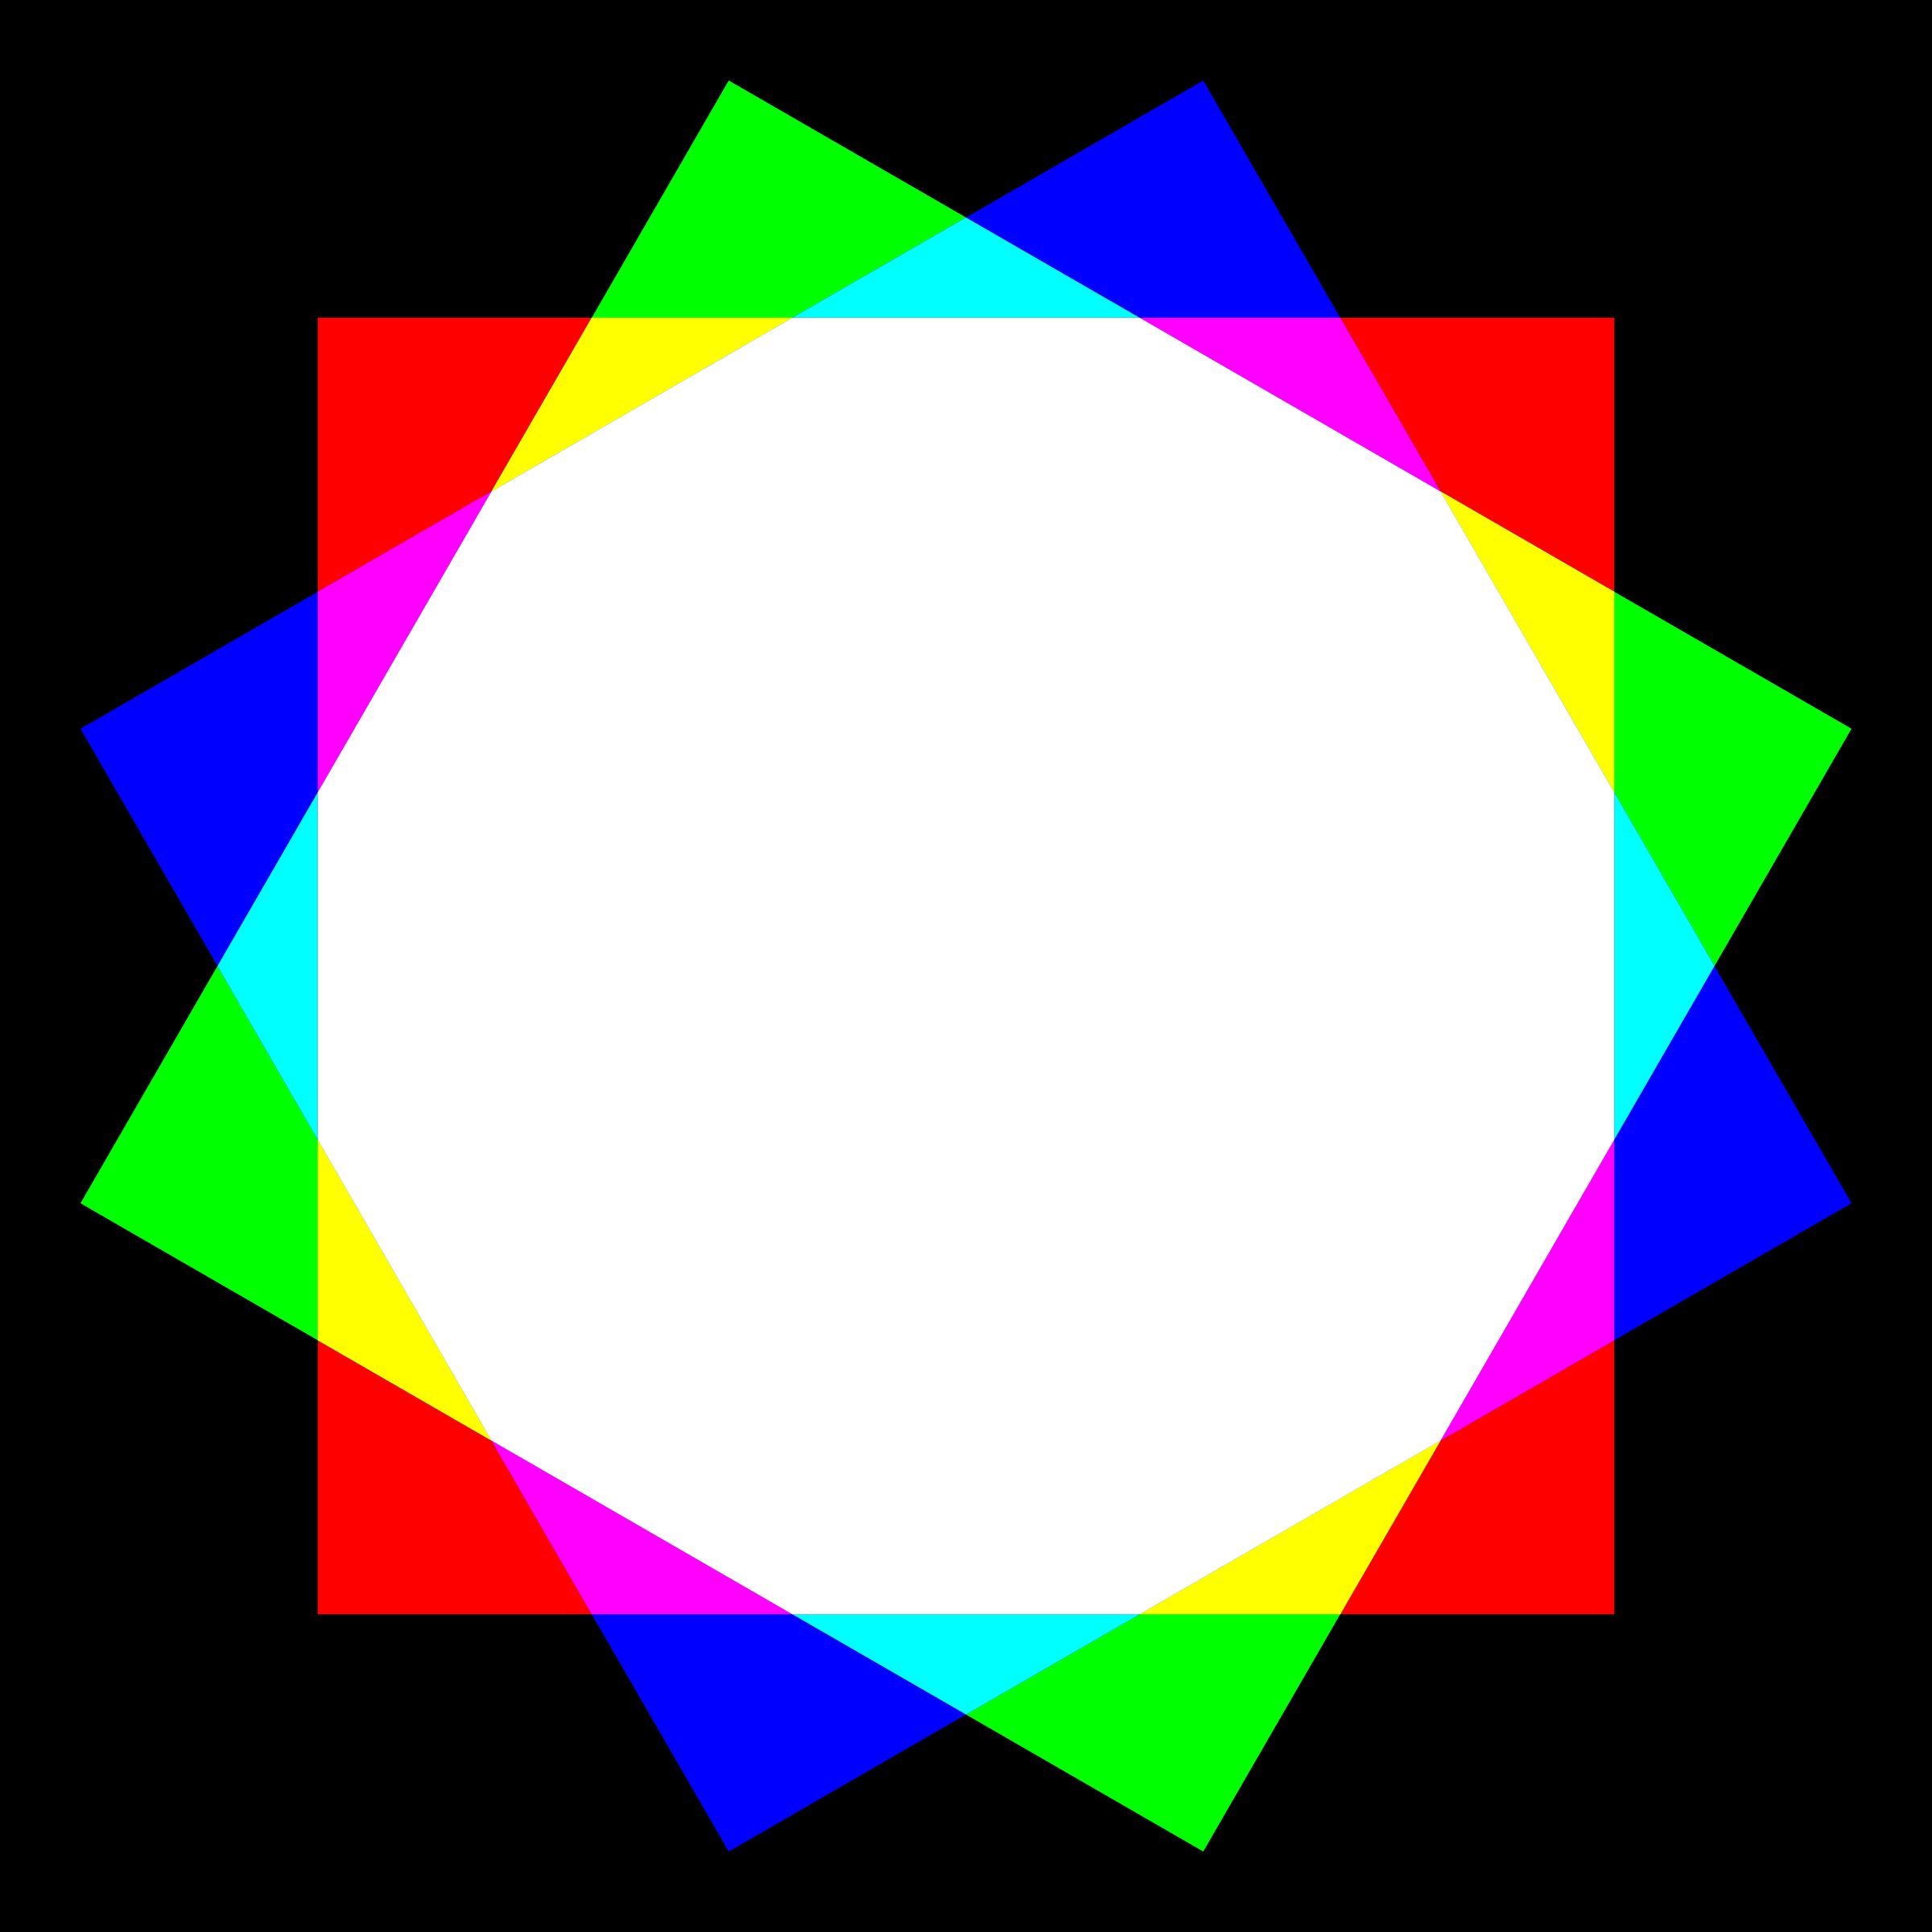 dodecagon color mixing by 10binary